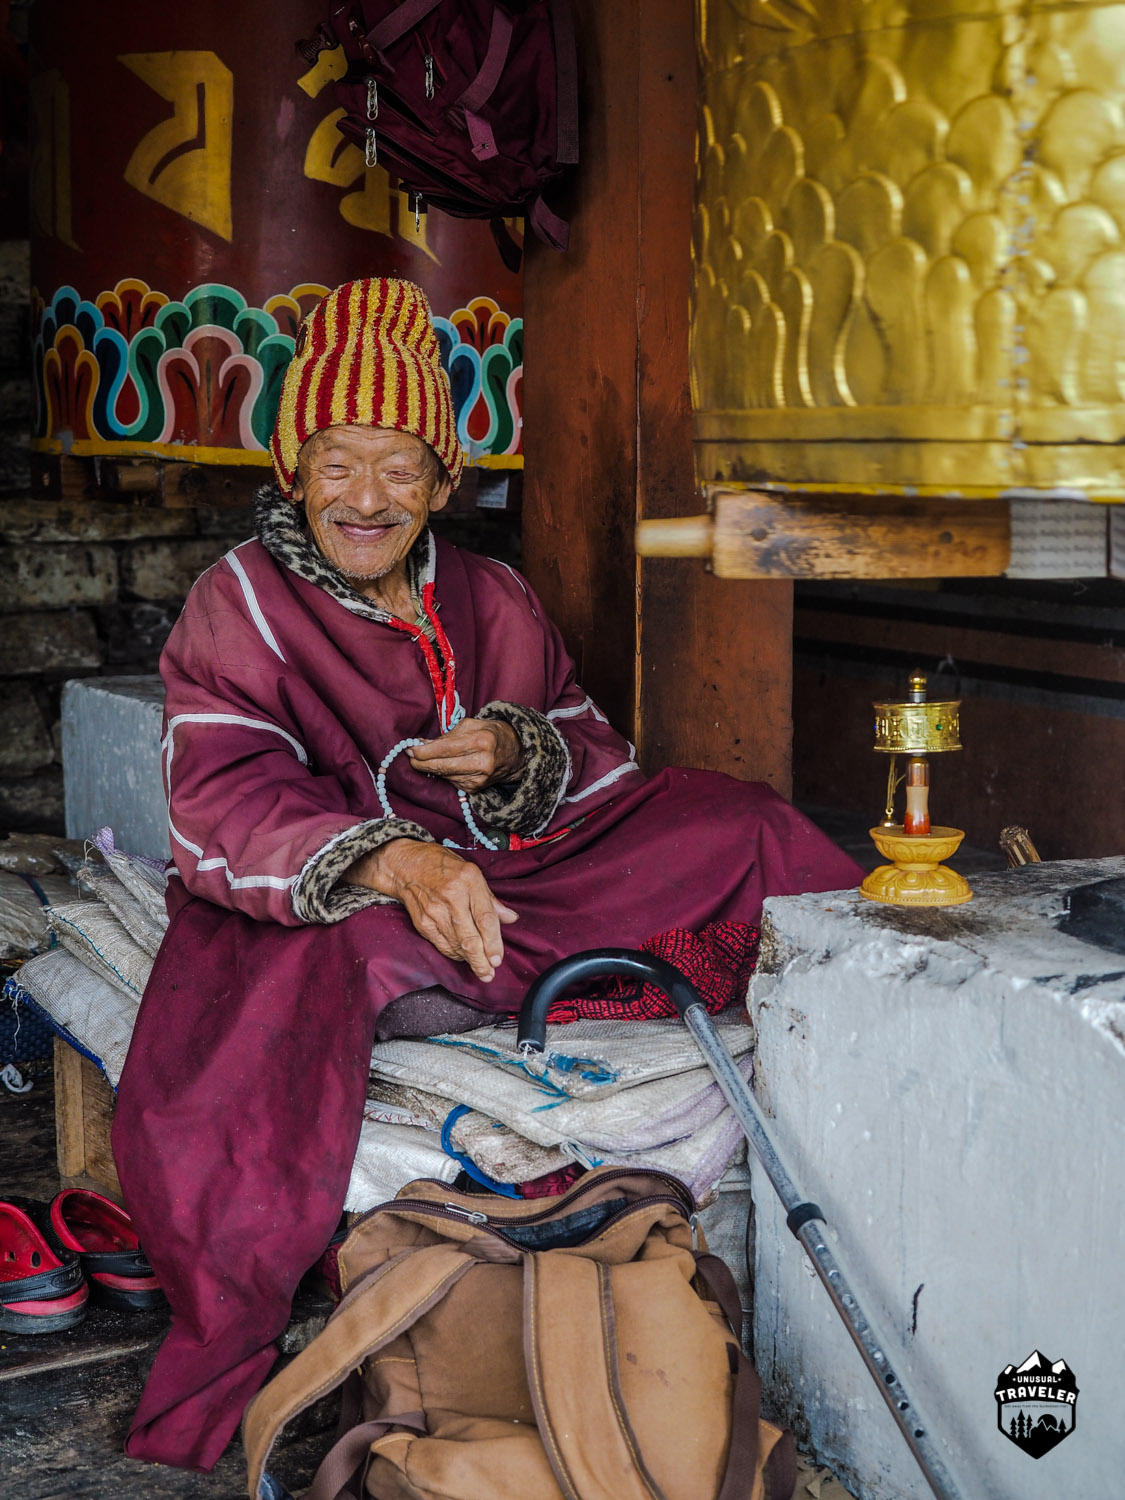 Bhutan measures wealth by gauging its citizens' happiness levels,